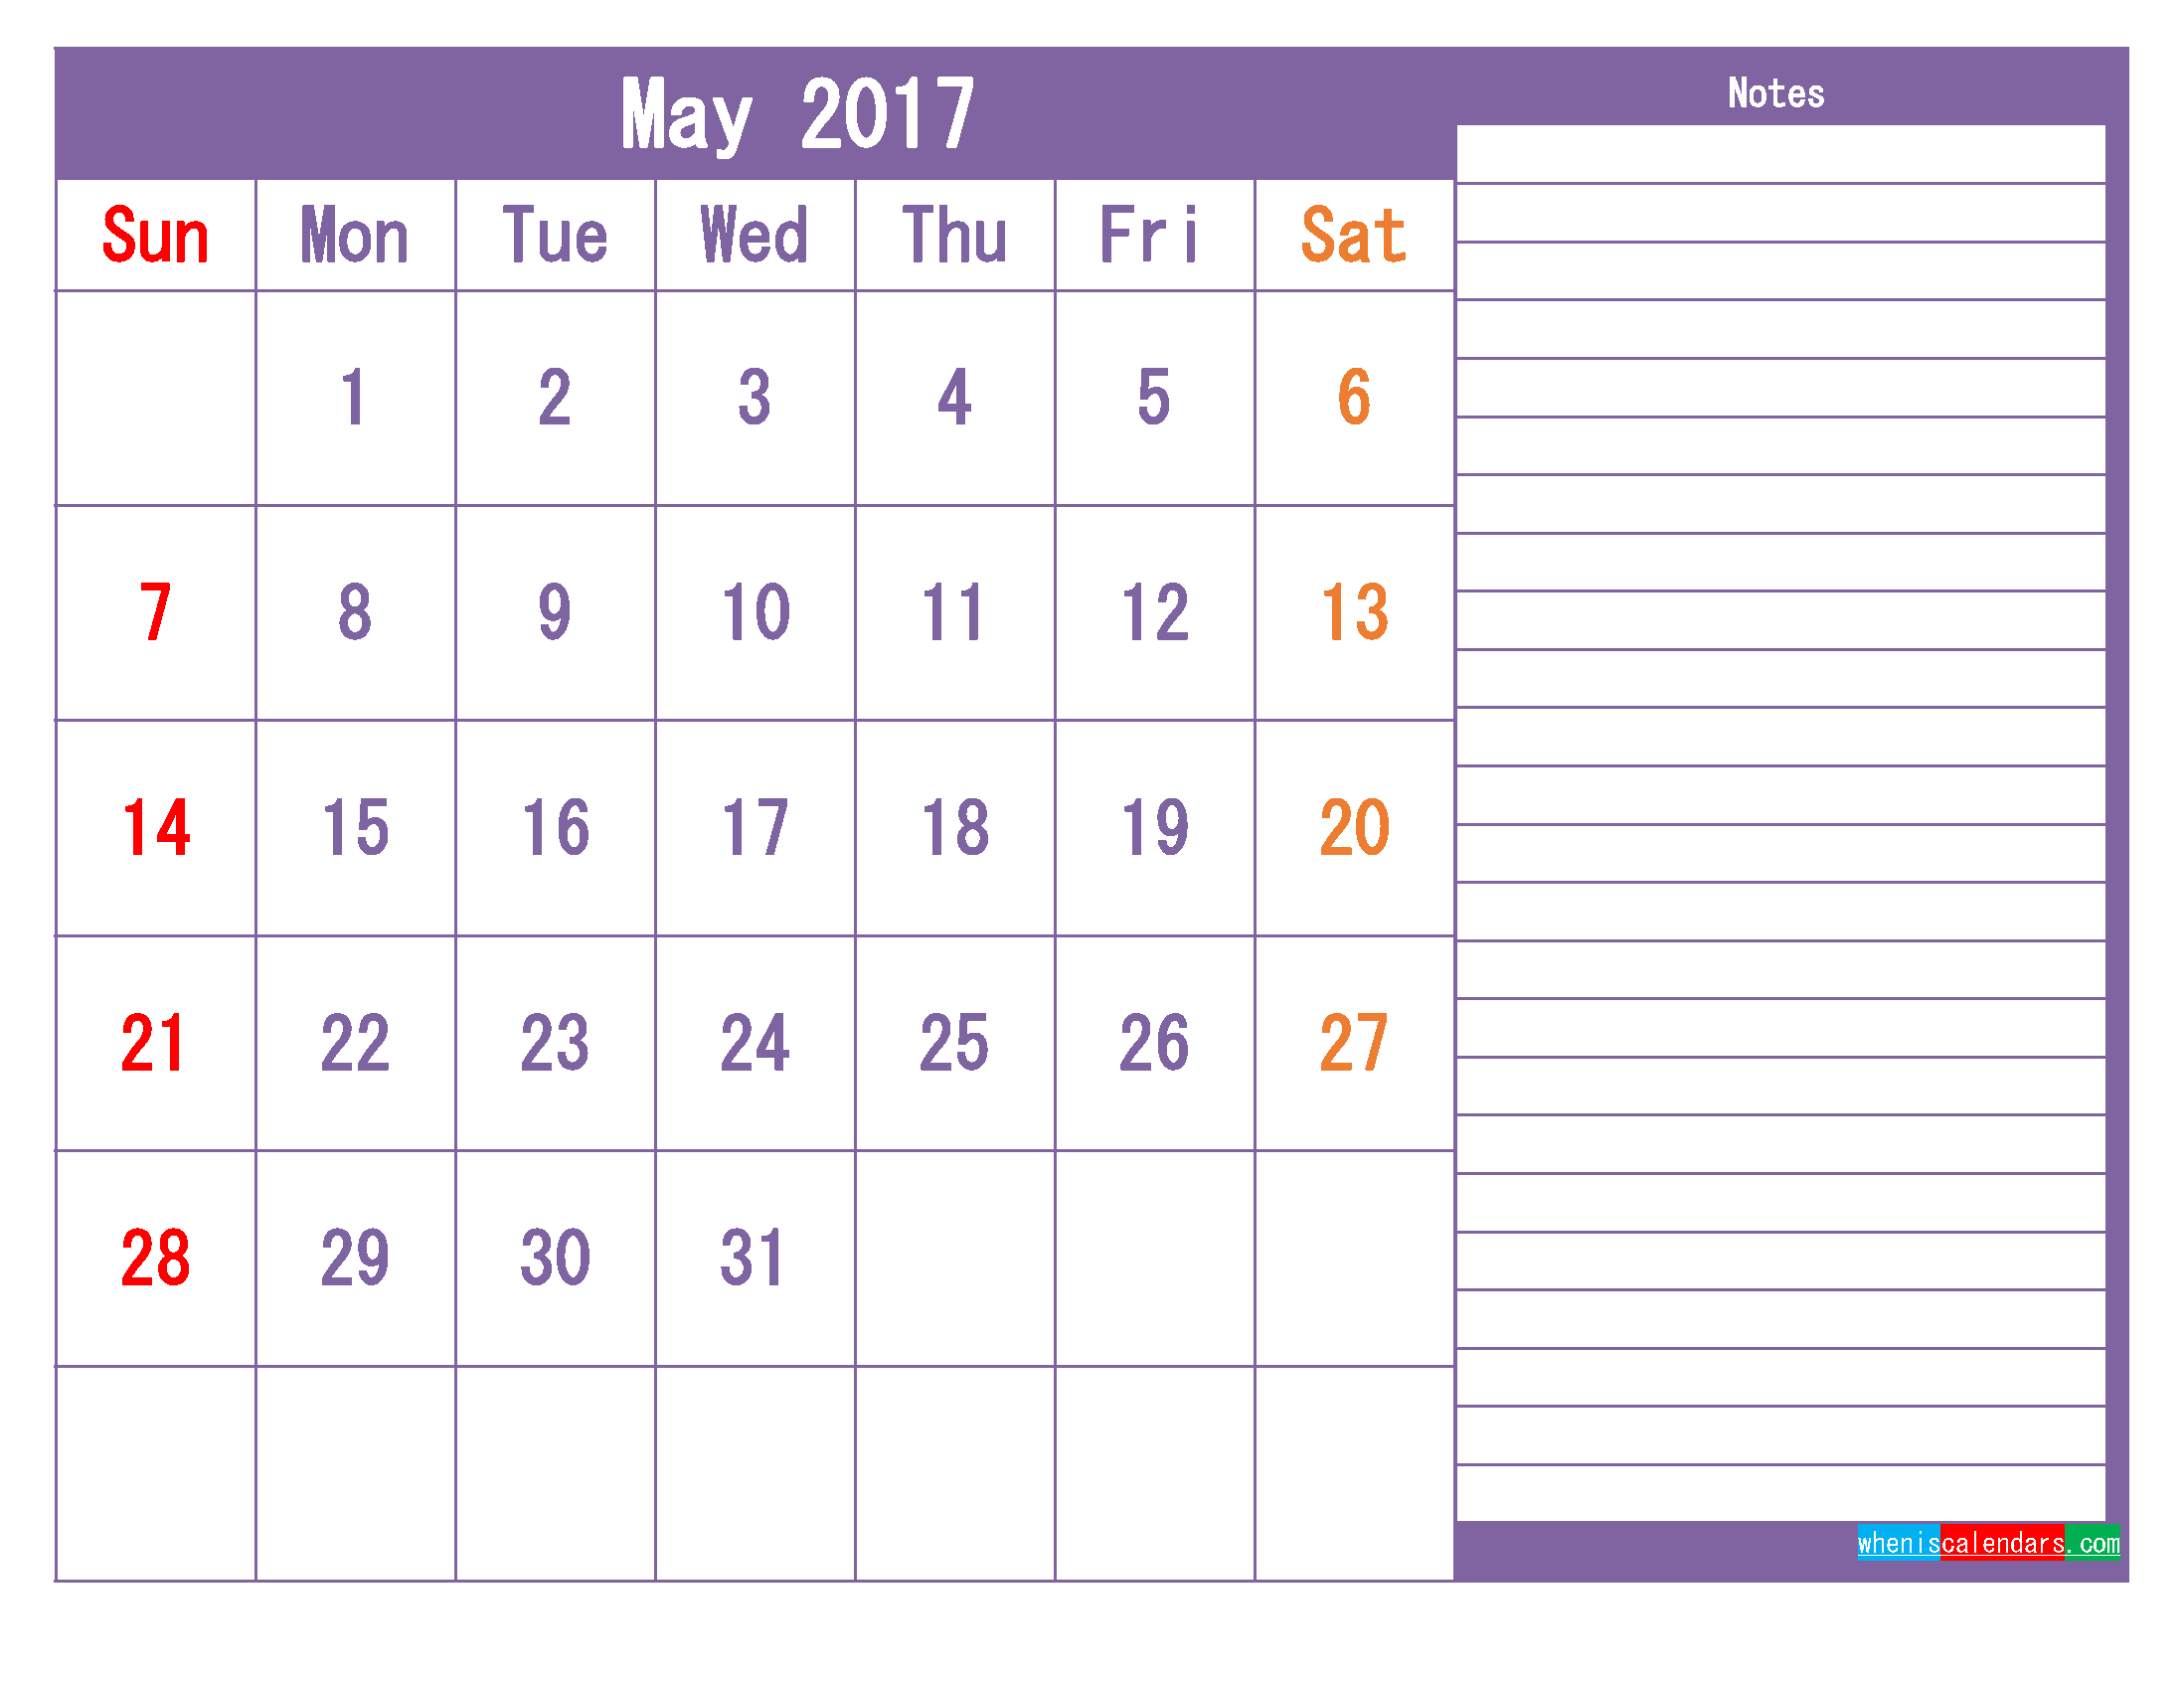 May 2017 Printable Calendar Template as PDF and PNG